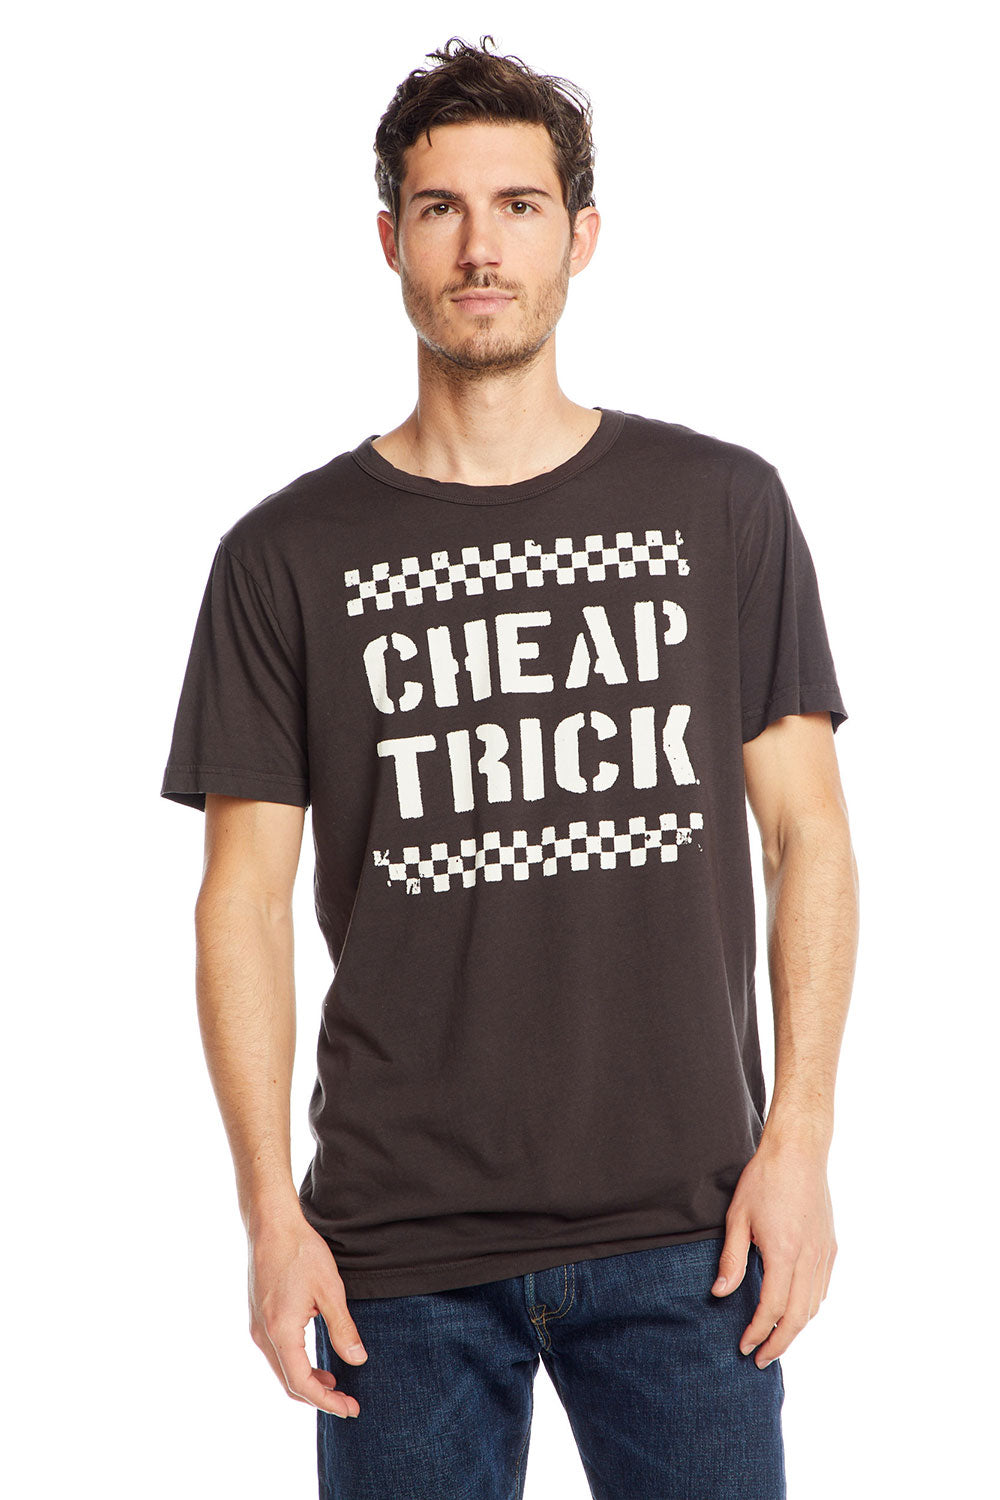 Cheap Trick - Checkerboard MENS - chaserbrand